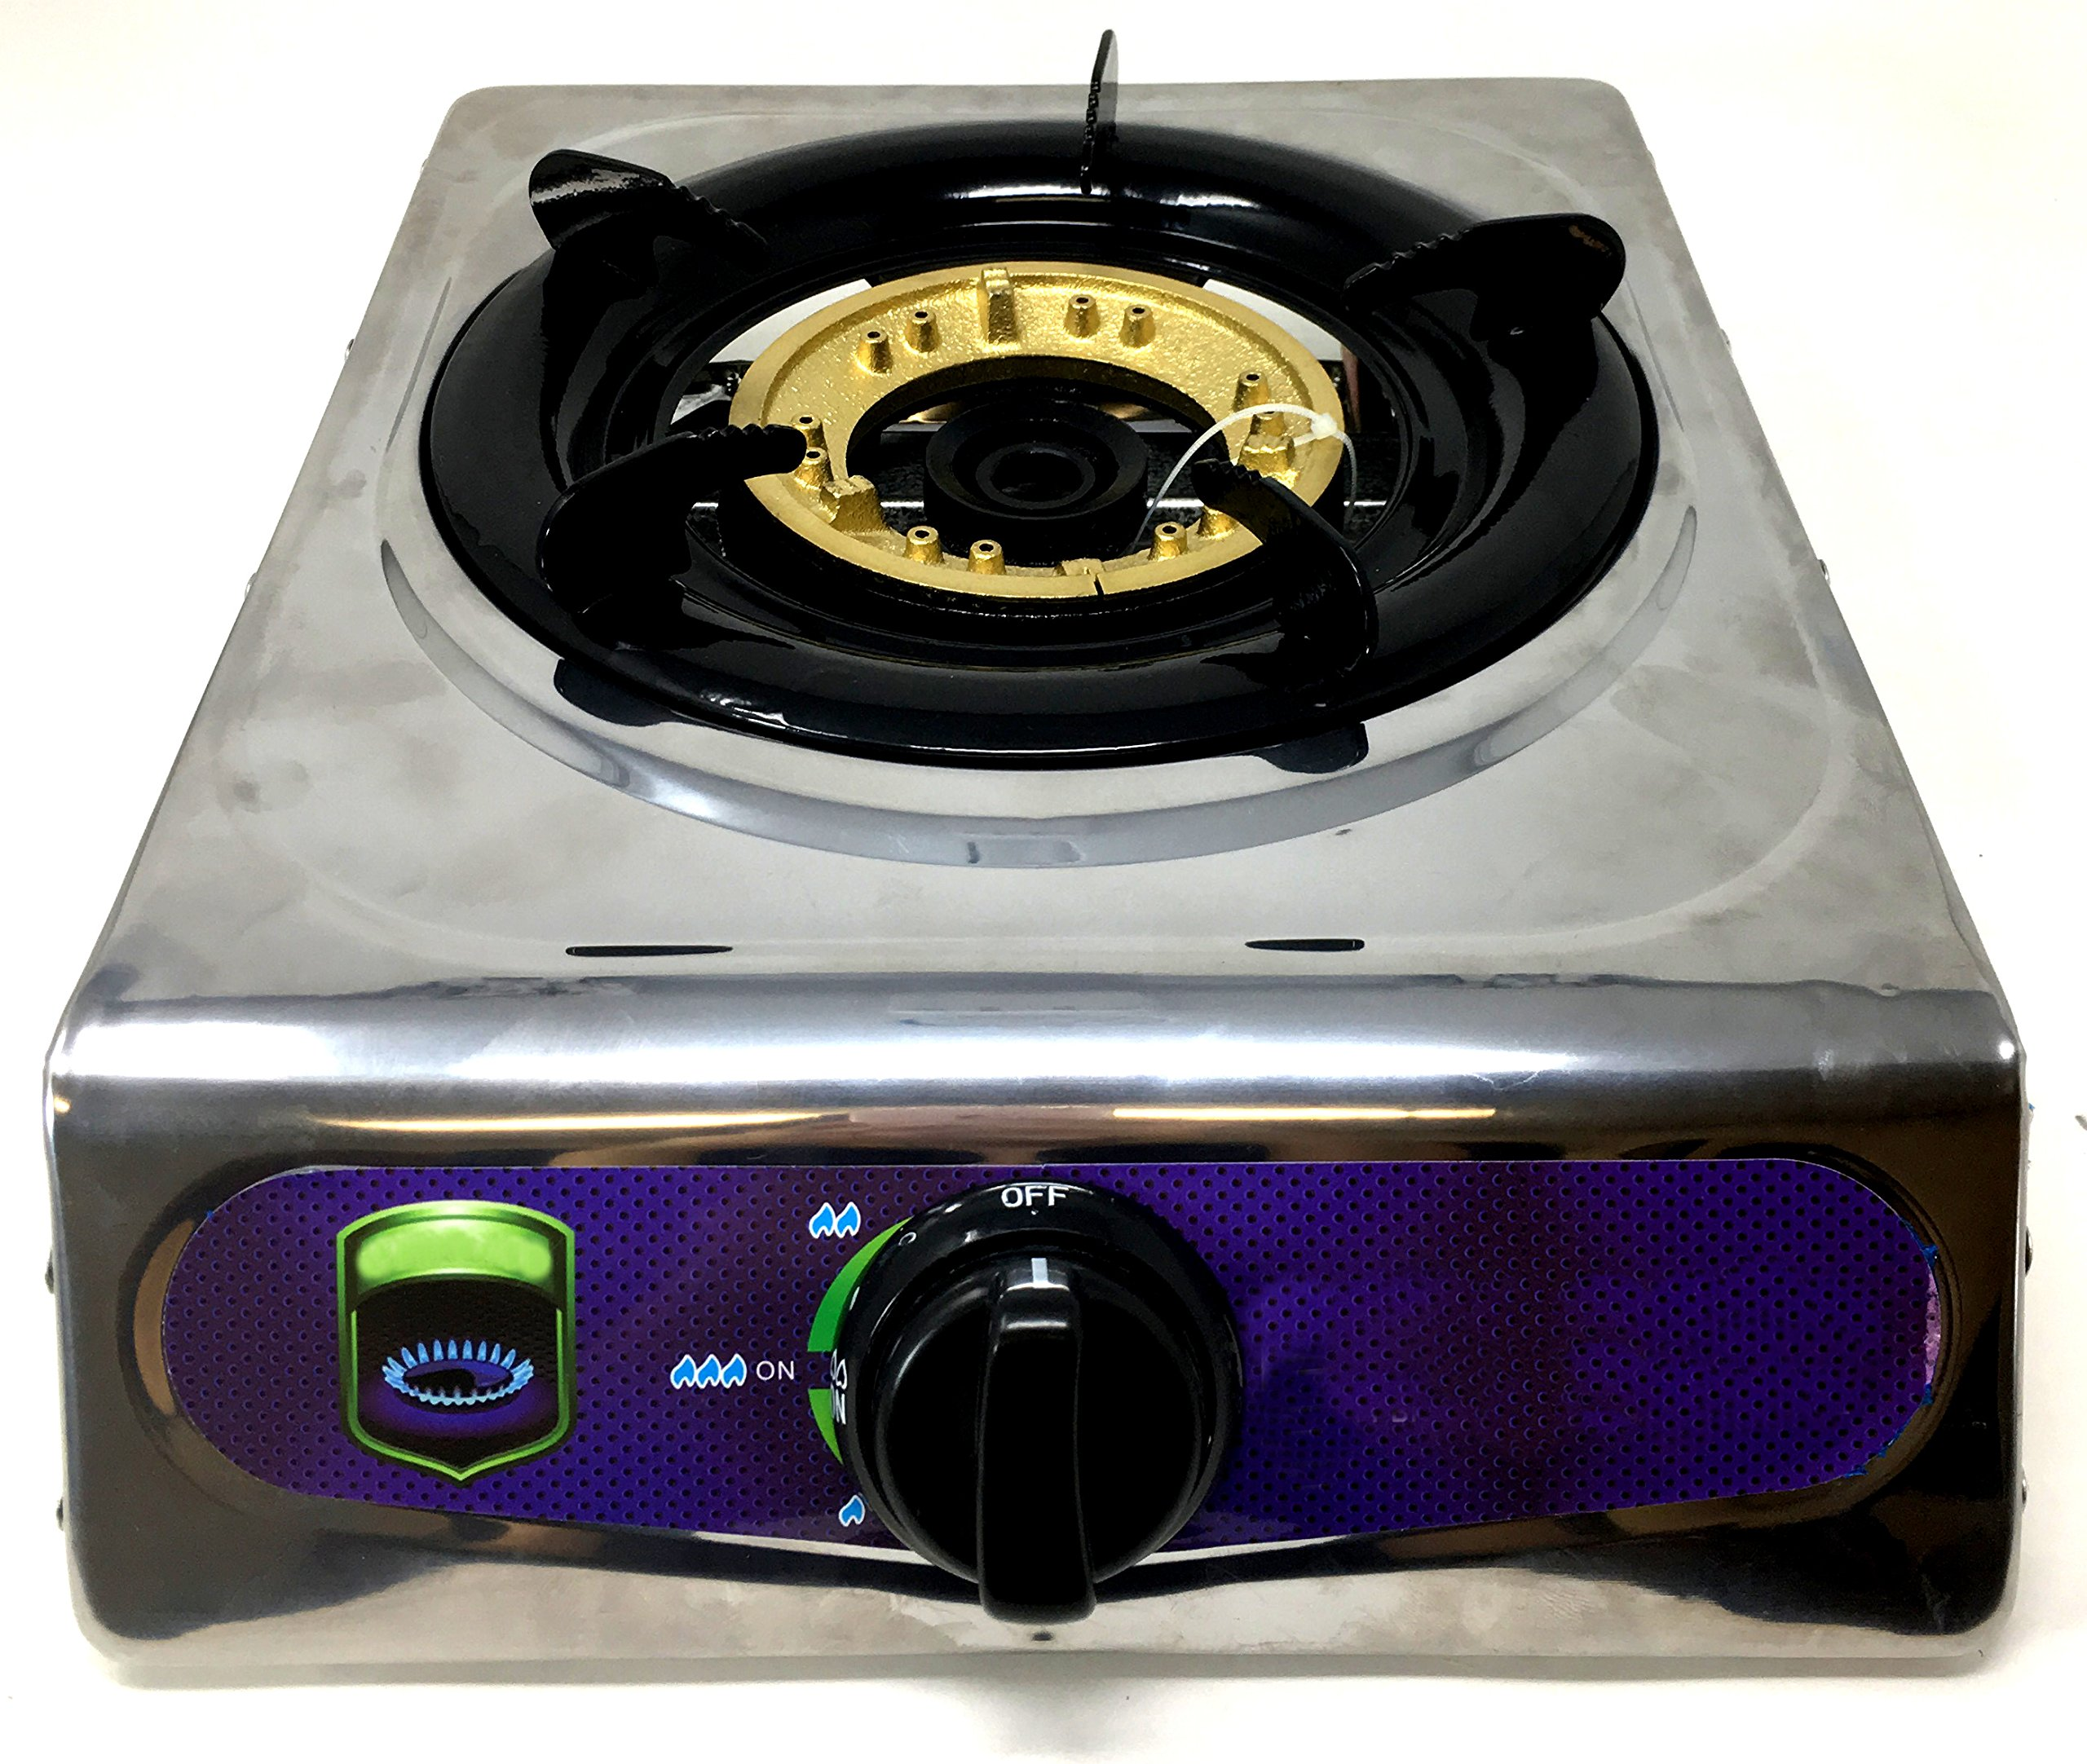 Unique Imports #1 Heavy Duty Portable Single Burner Propane Gas Stove Outdoor Cooking Butane Gas Stove Full Stainless Steel Body & Electronic Ignition